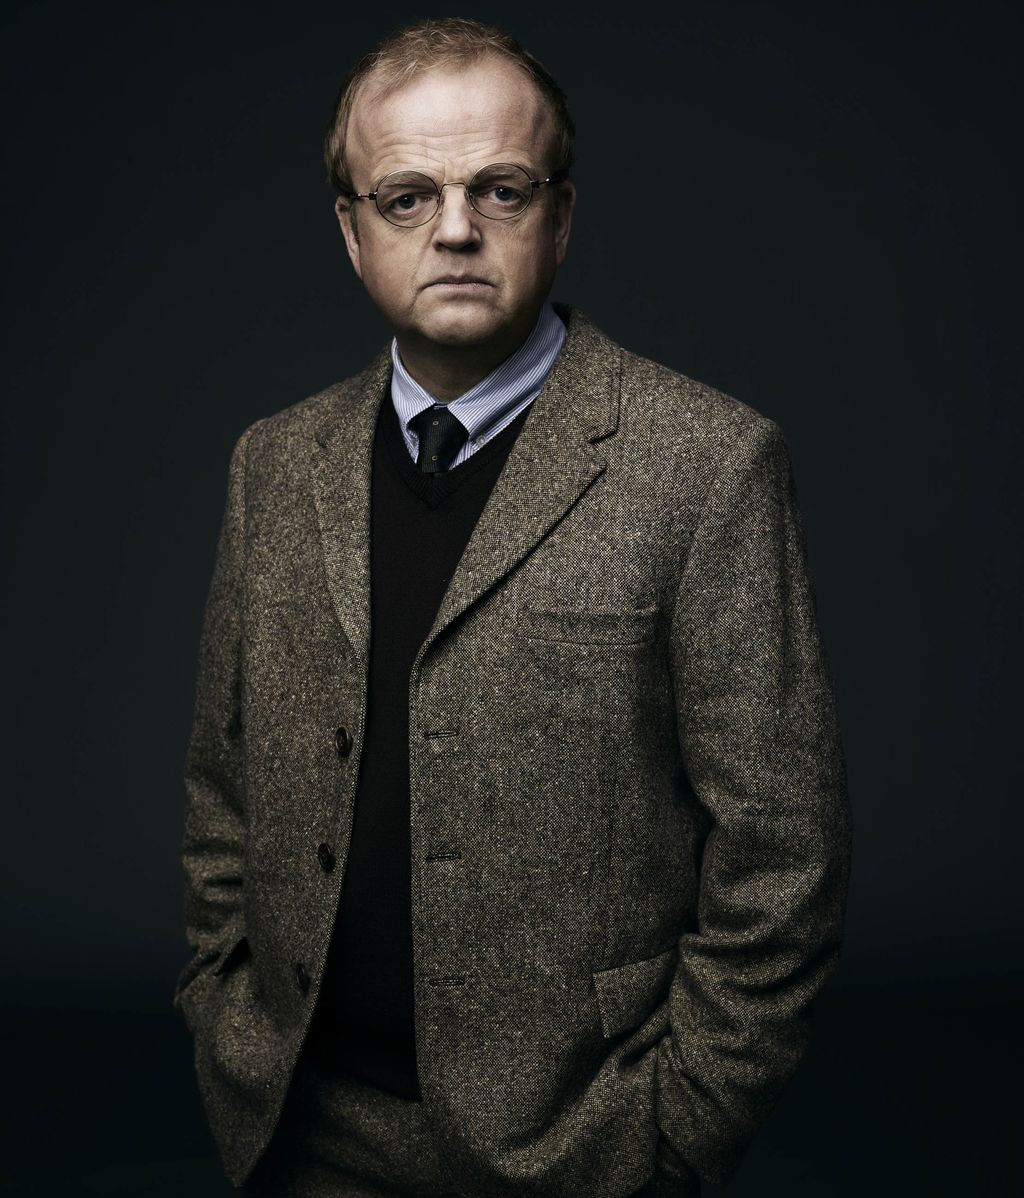 Toby Jones - Wayward pines